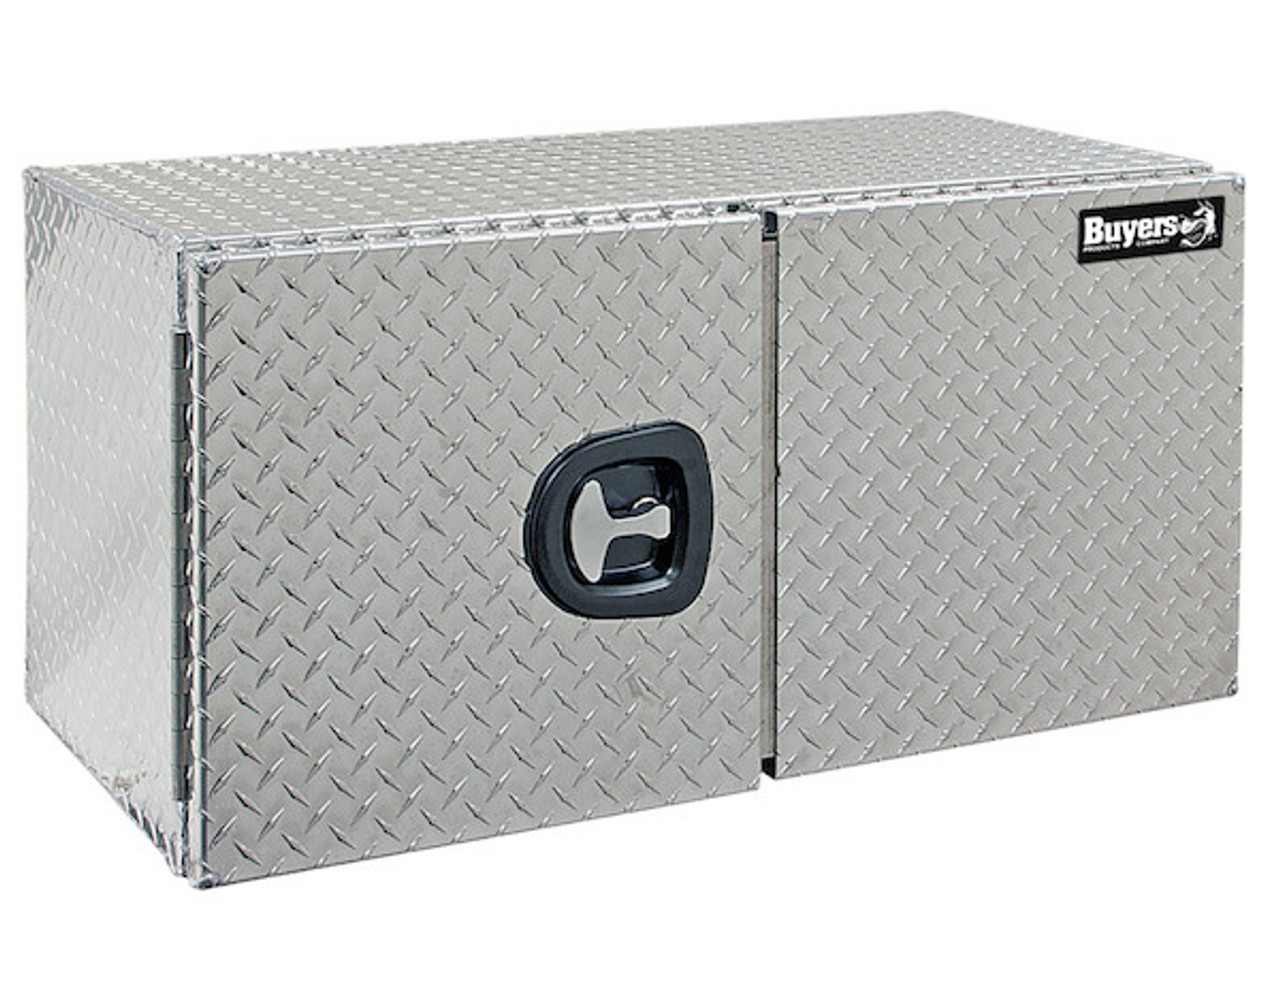 "1705215 BUYERS PRODUCTS DIAMOND TREAD ALUMINUM UNDERBODY TRUCK TOOLBOX WITH BARN DOOR18""HX18""DX60""W"